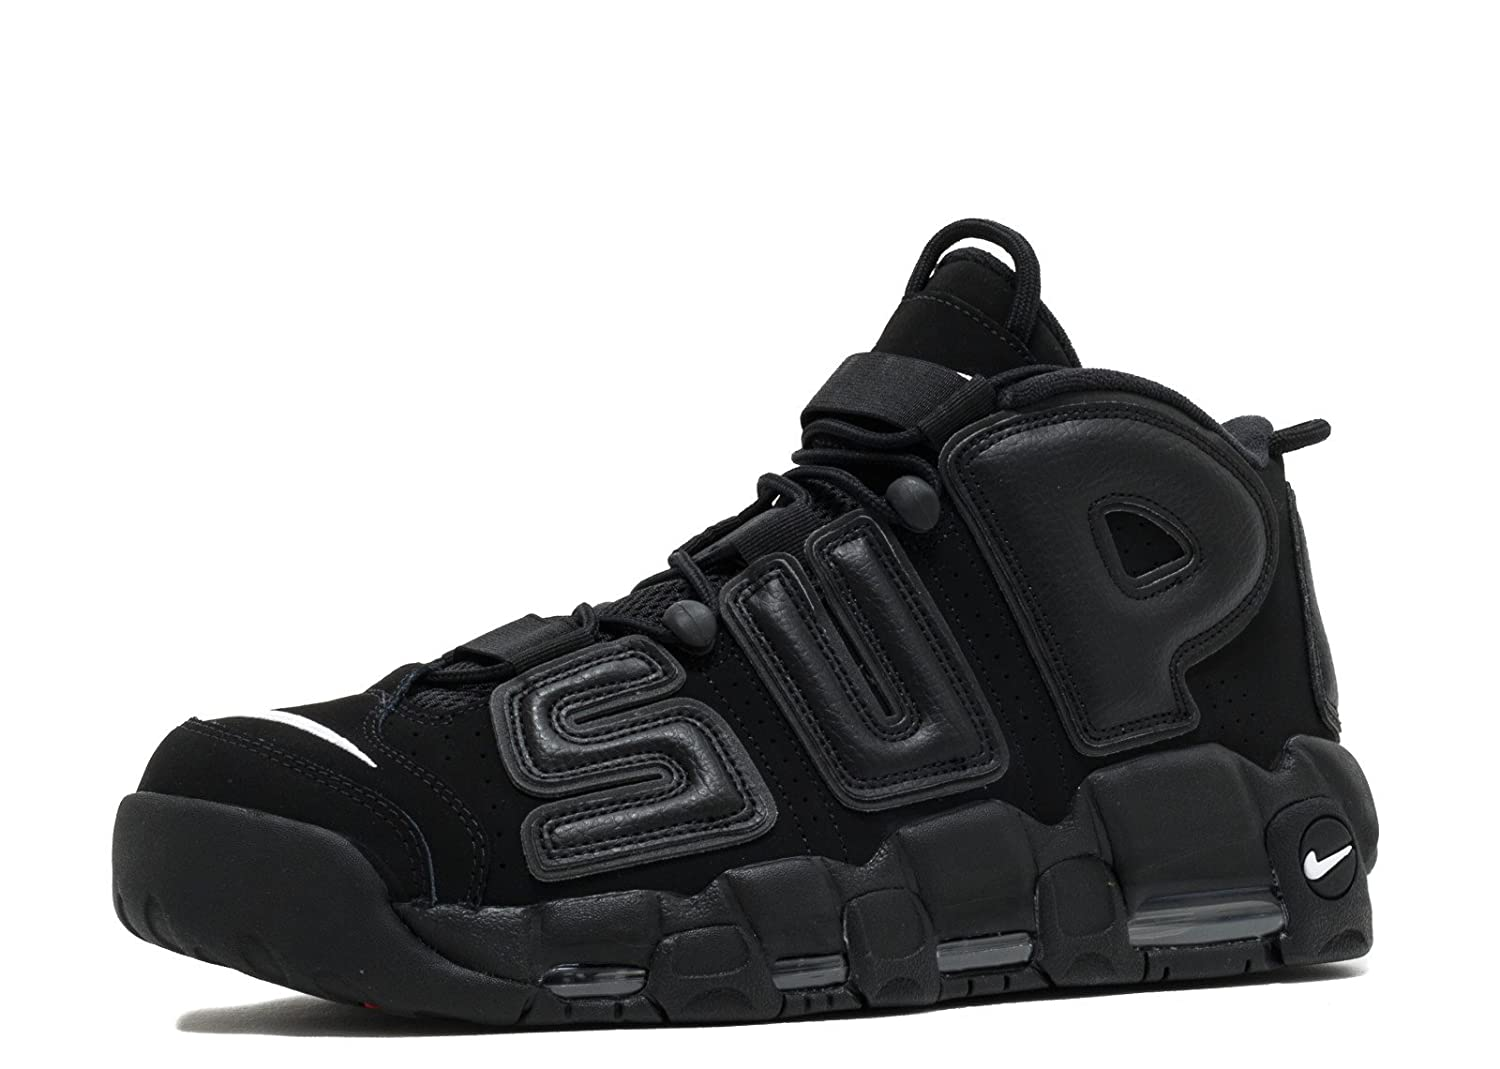 Nike Air More Uptempo Supreme - Black/Black-White Trainer: Amazon.es: Zapatos y complementos